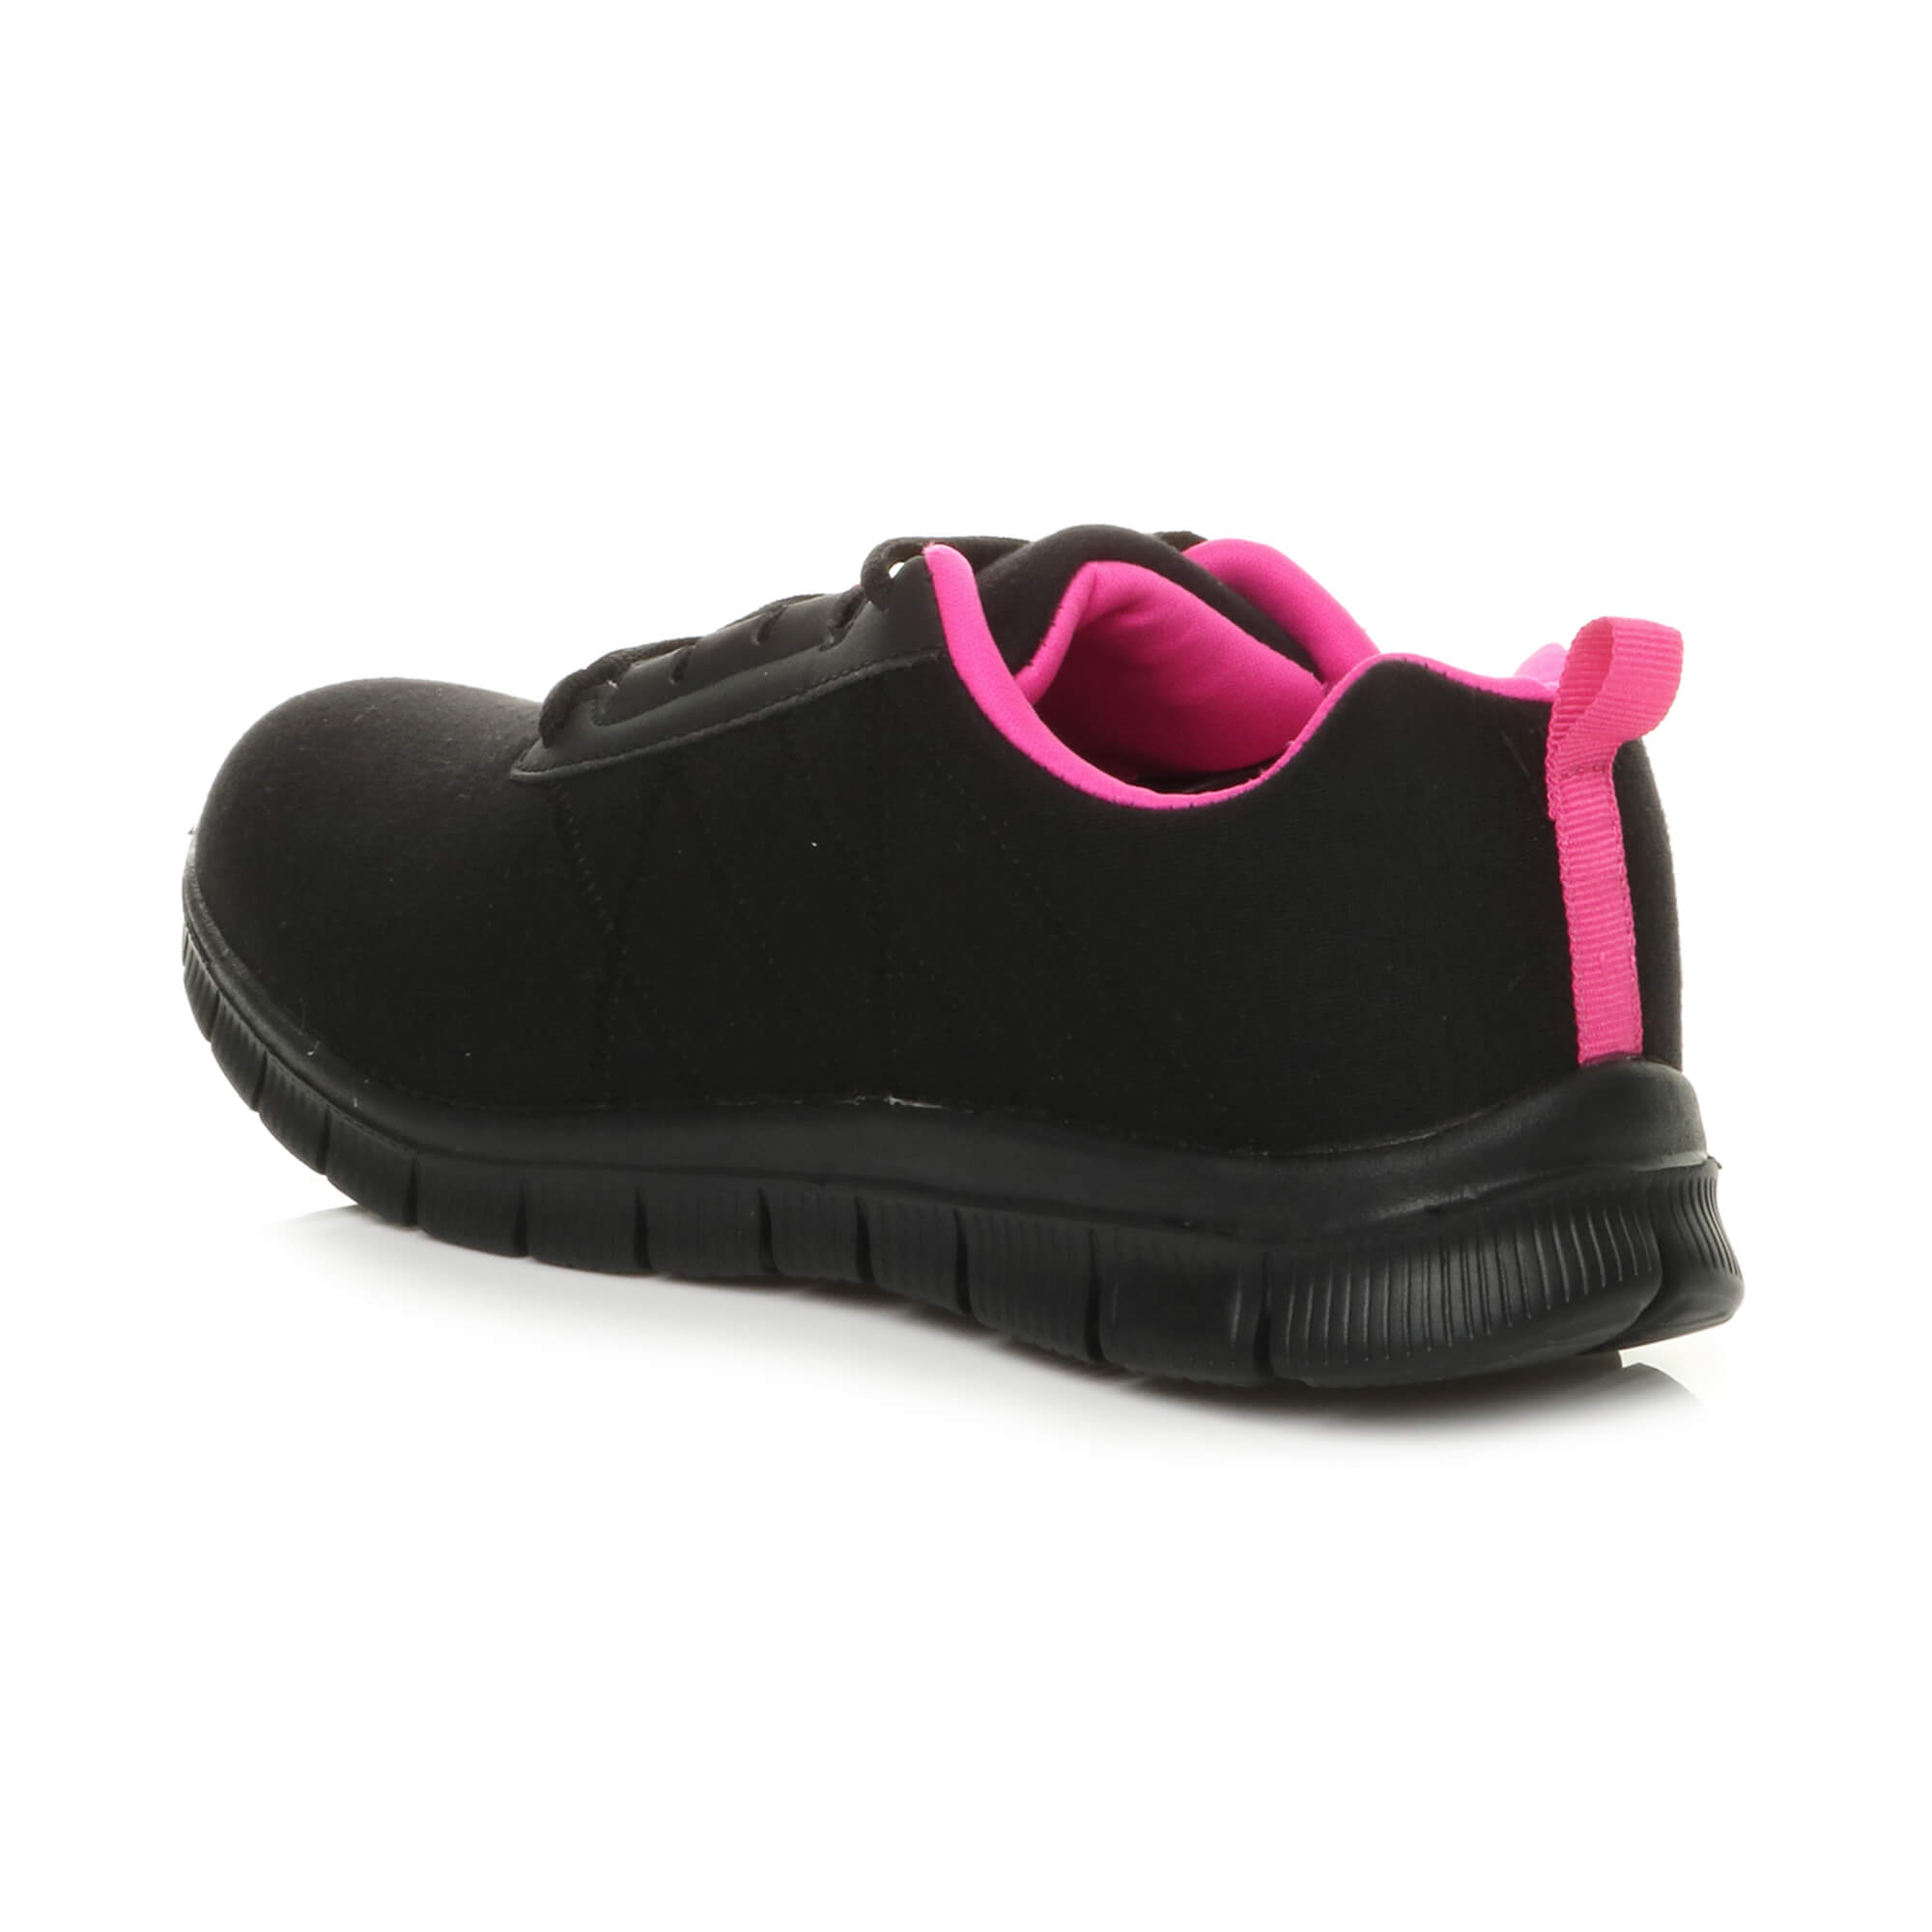 Womens-ladies-comfort-memory-foam-lace-up-trainers-activewear-sneakers-gym-shoes thumbnail 5